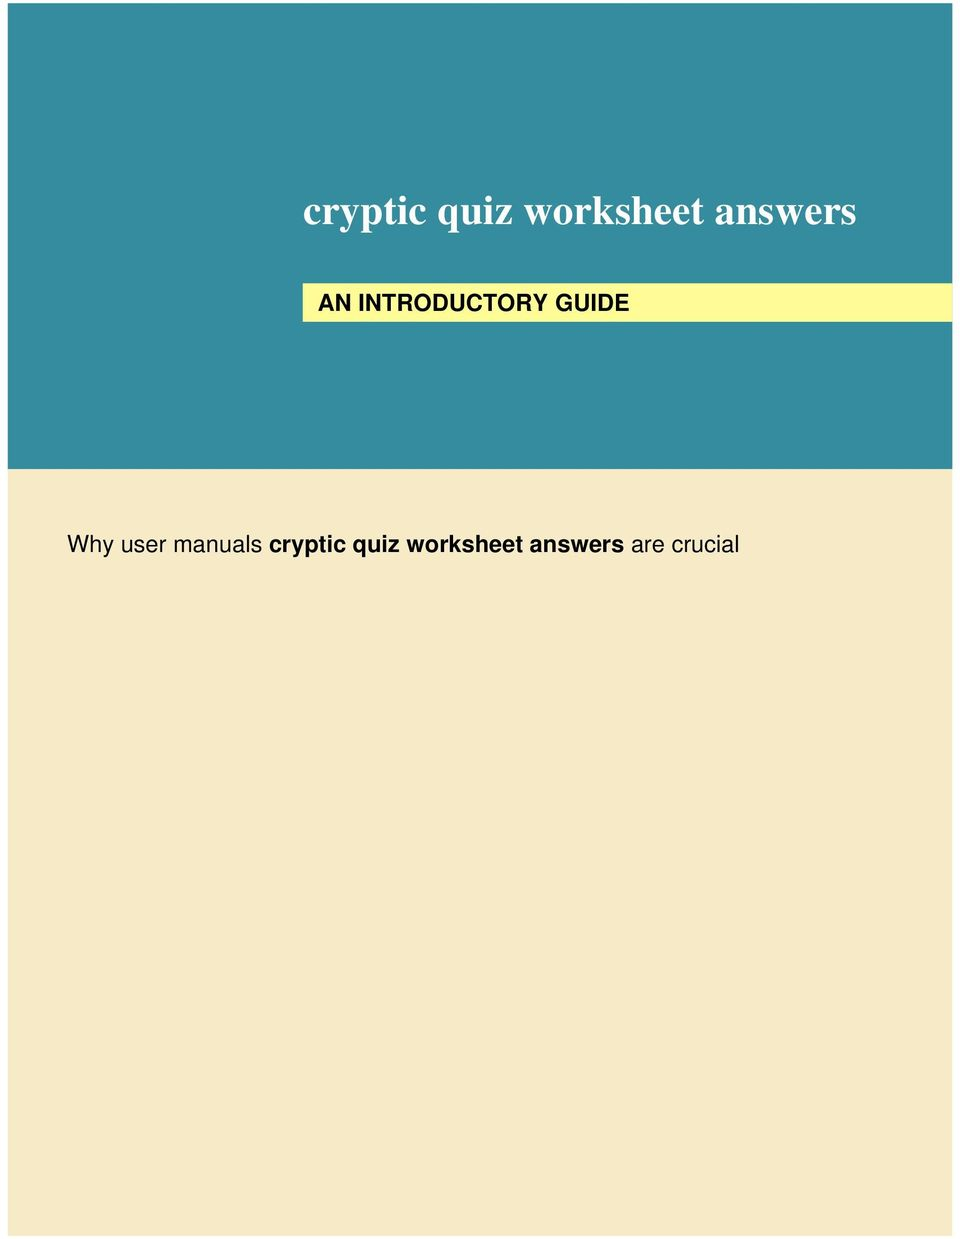 Cryptic Quiz Worksheet Solving Proportions - Kidz Activities